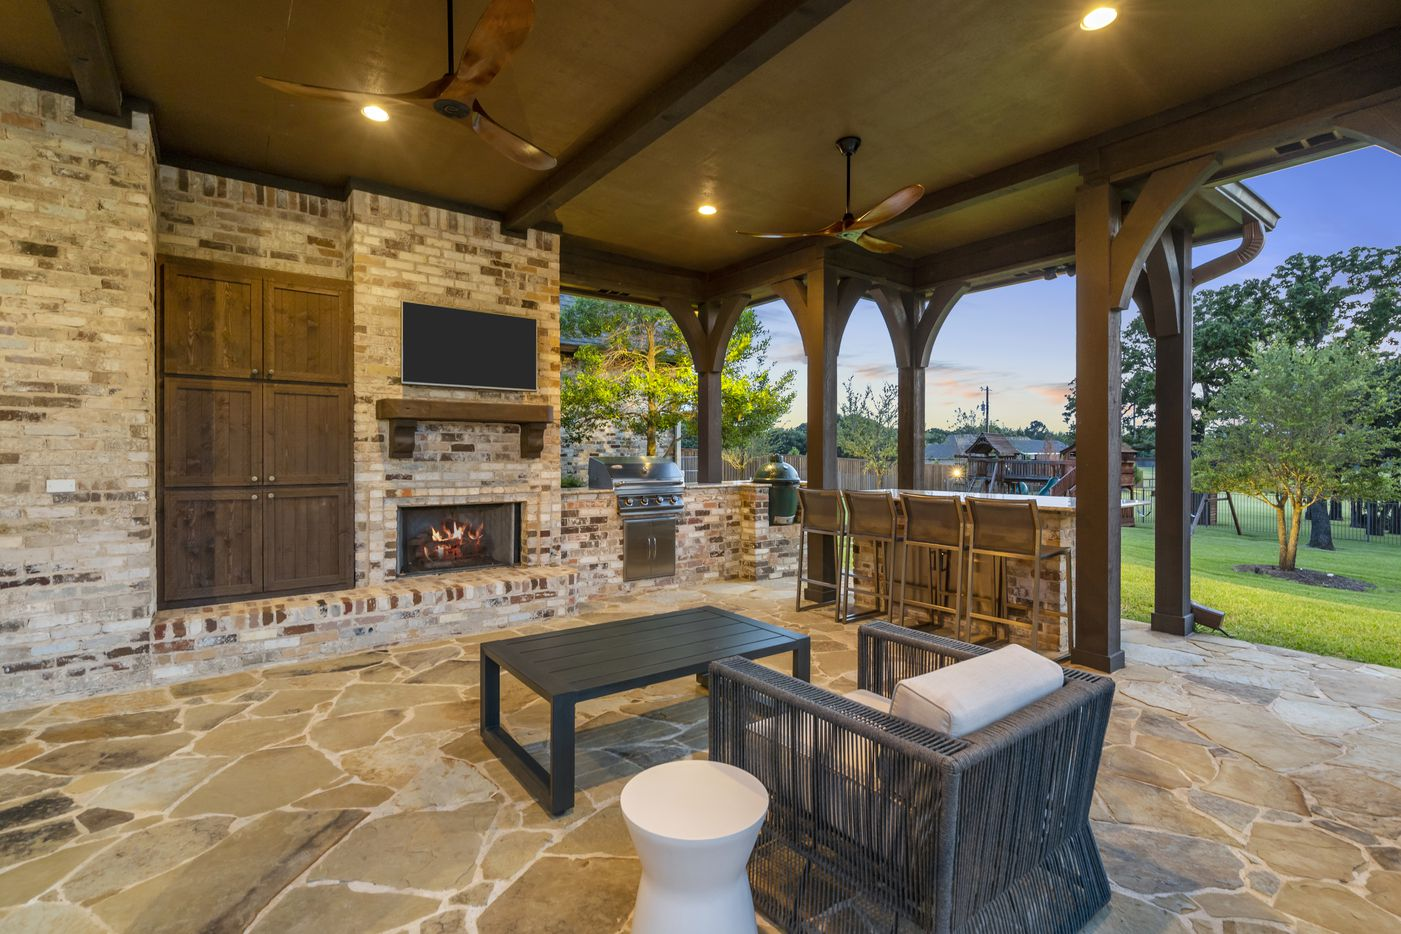 Take a look at the house at 844 Keller Smithfield Road in Keller.